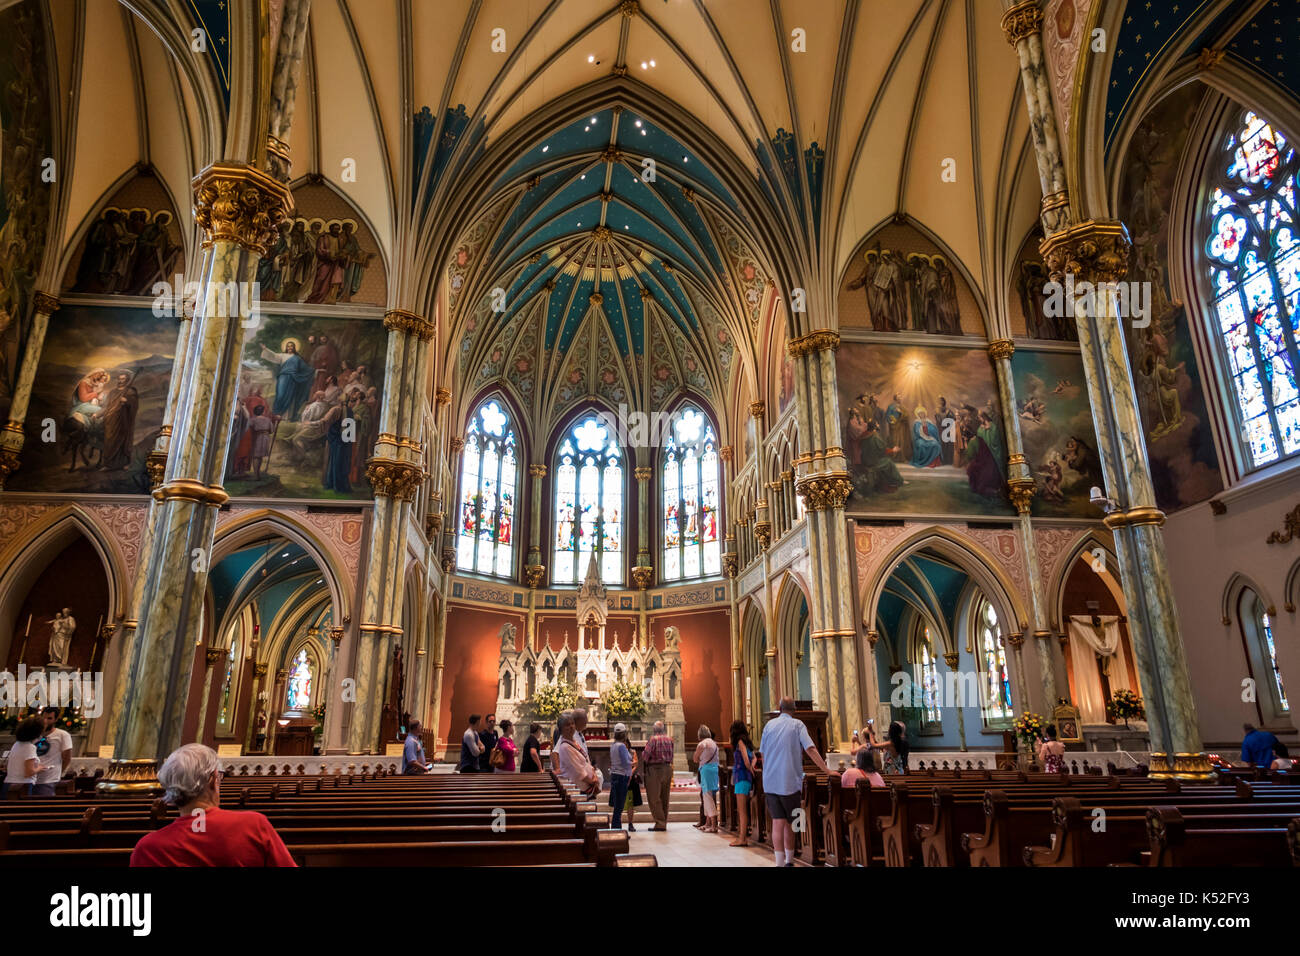 Savannah Georgia historic district Lafayette Square Cathedral of St. John the Baptist interior altar Gothic arch - Stock Image